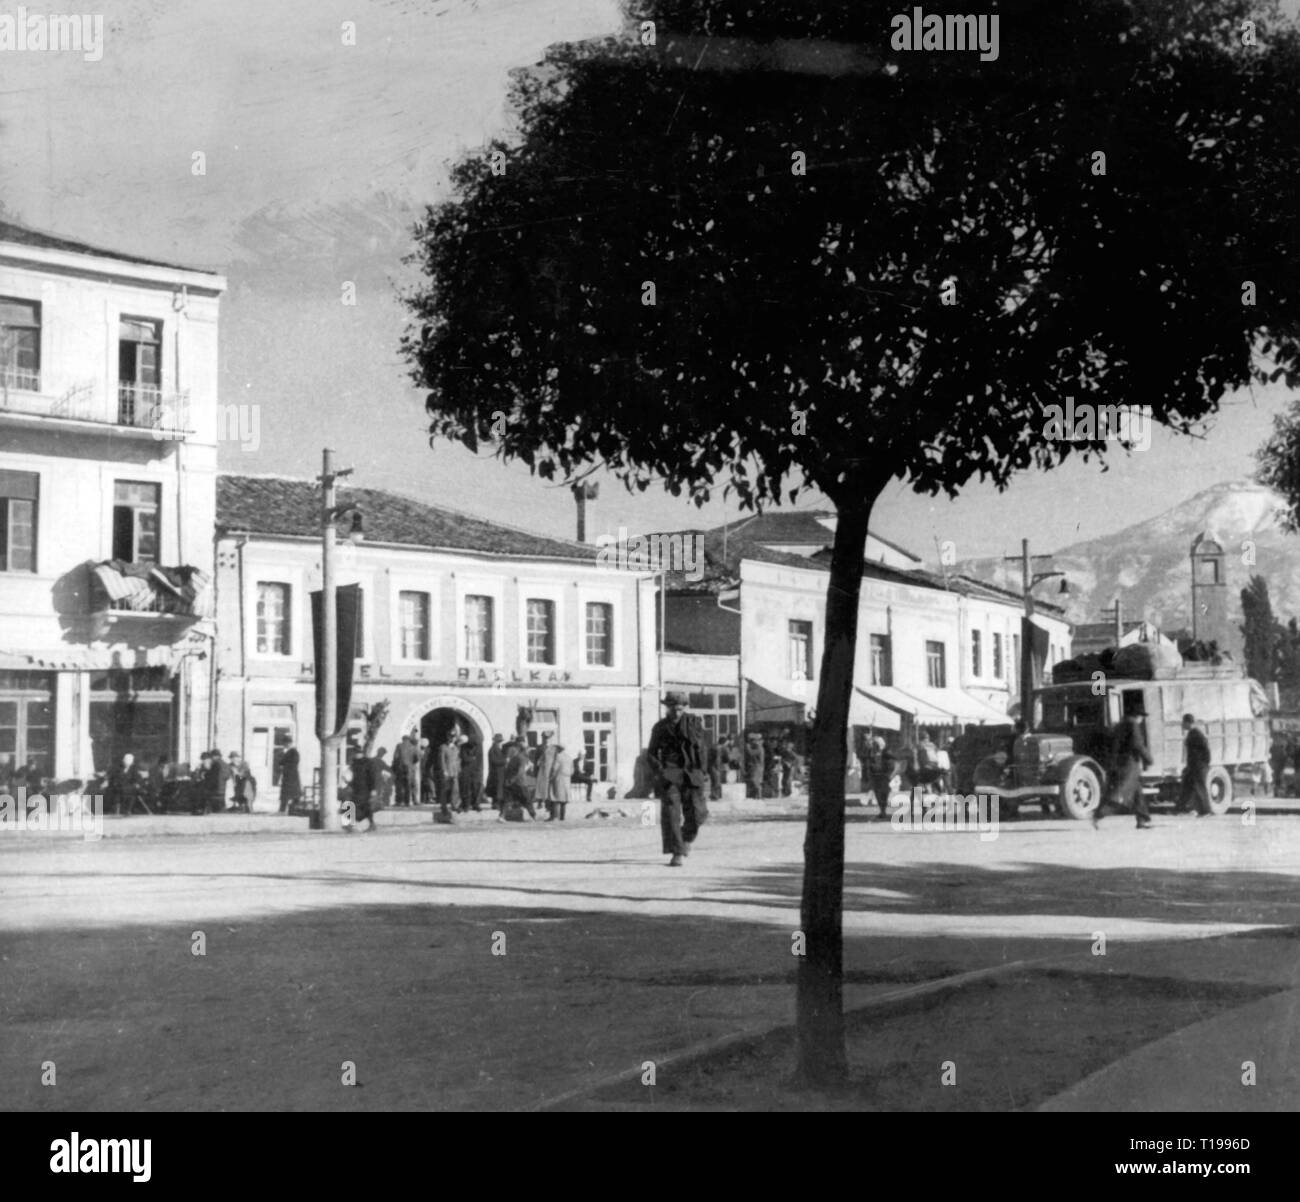 geography / travel historic, Albania, cities and communities, Tirana, streets, street scene, 1930s, Additional-Rights-Clearance-Info-Not-Available - Stock Image